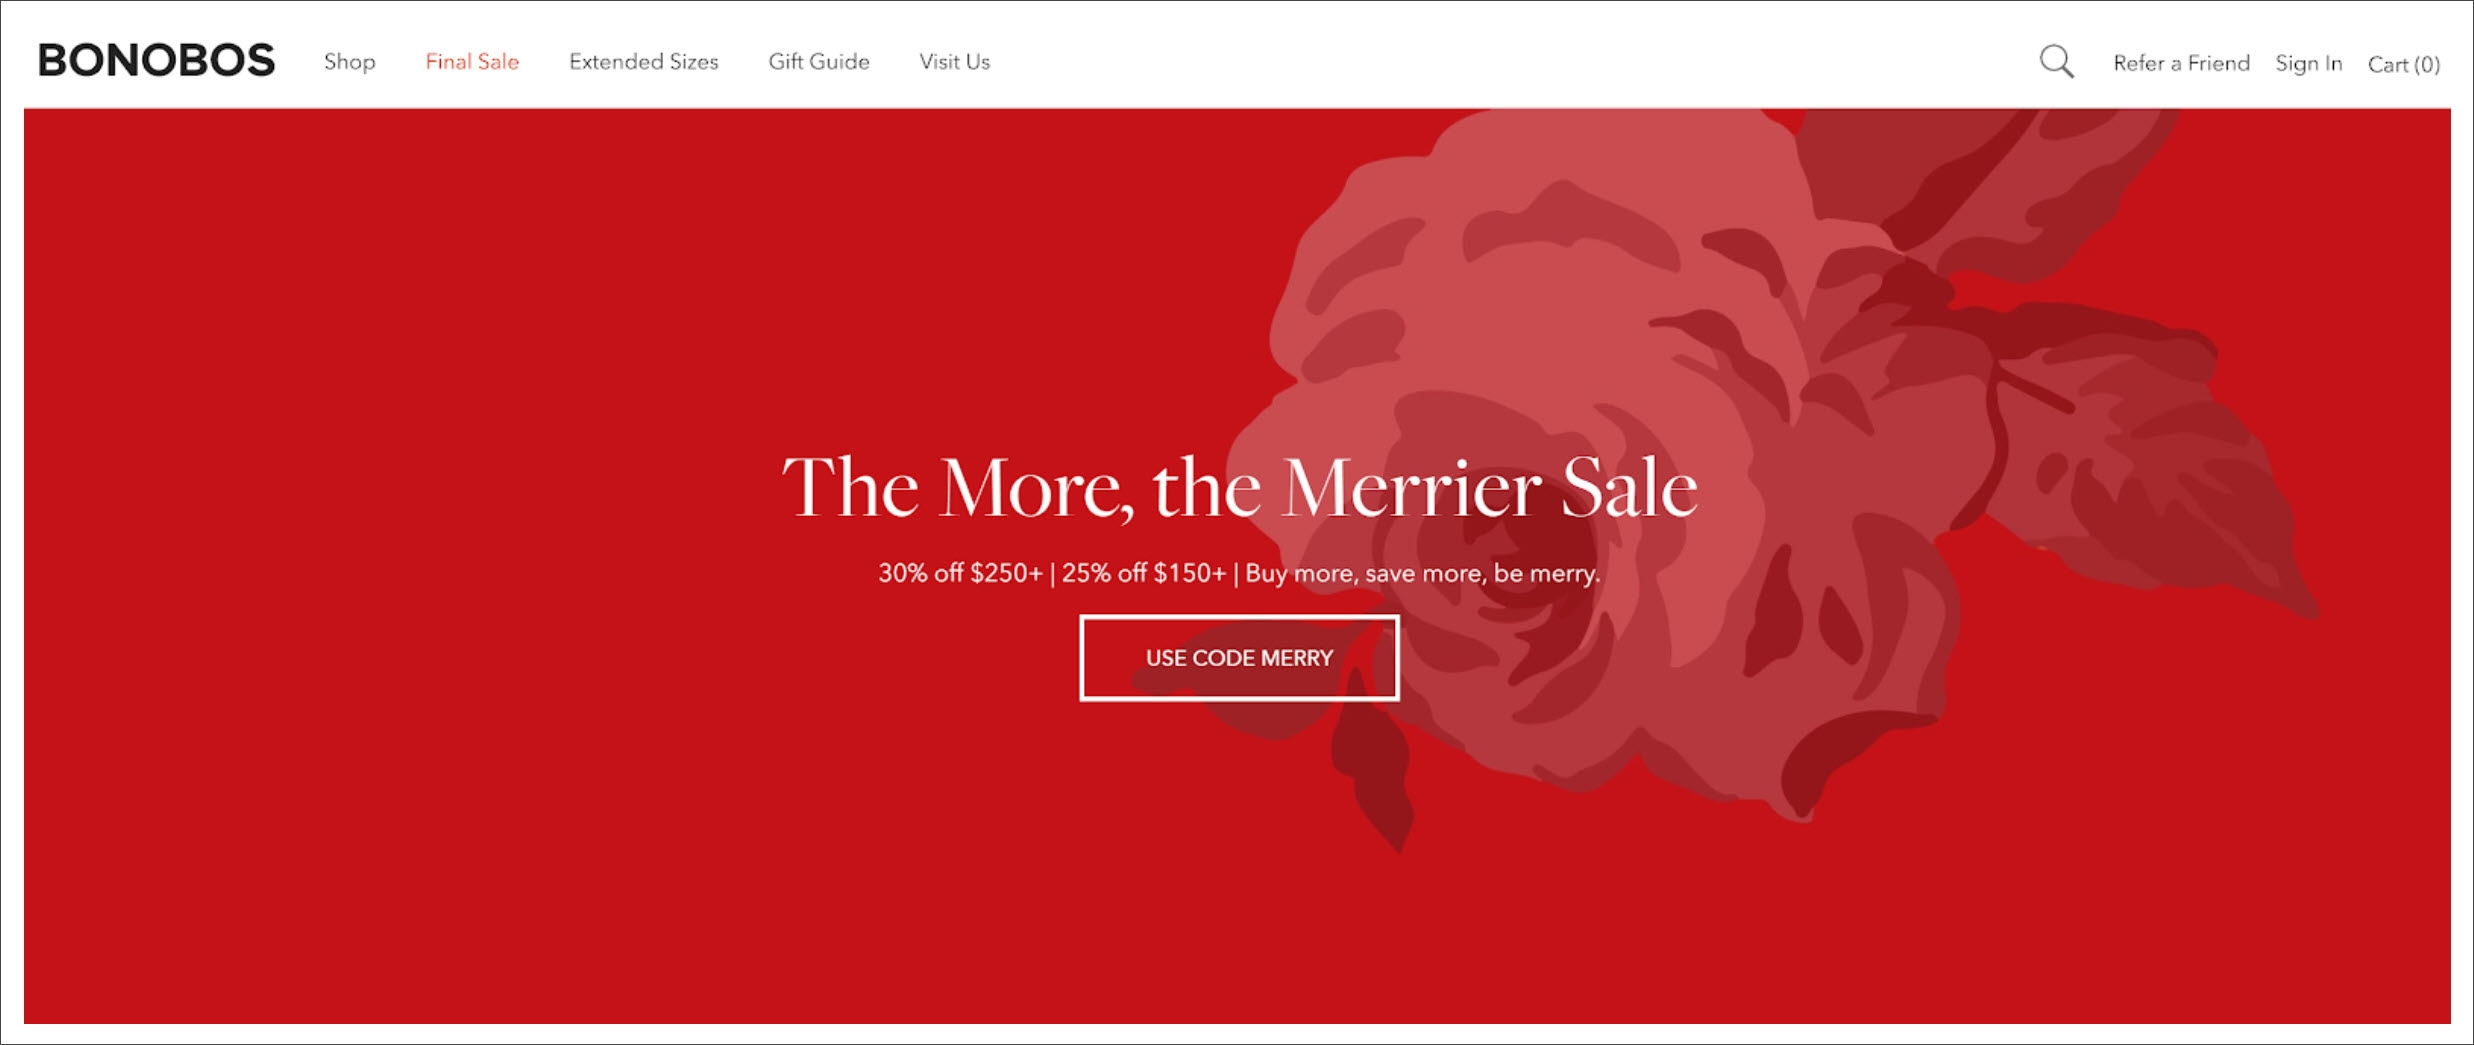 Ghosts of Marketing Past: Ecommerce Inspiration to Get You in the Holiday Spirit